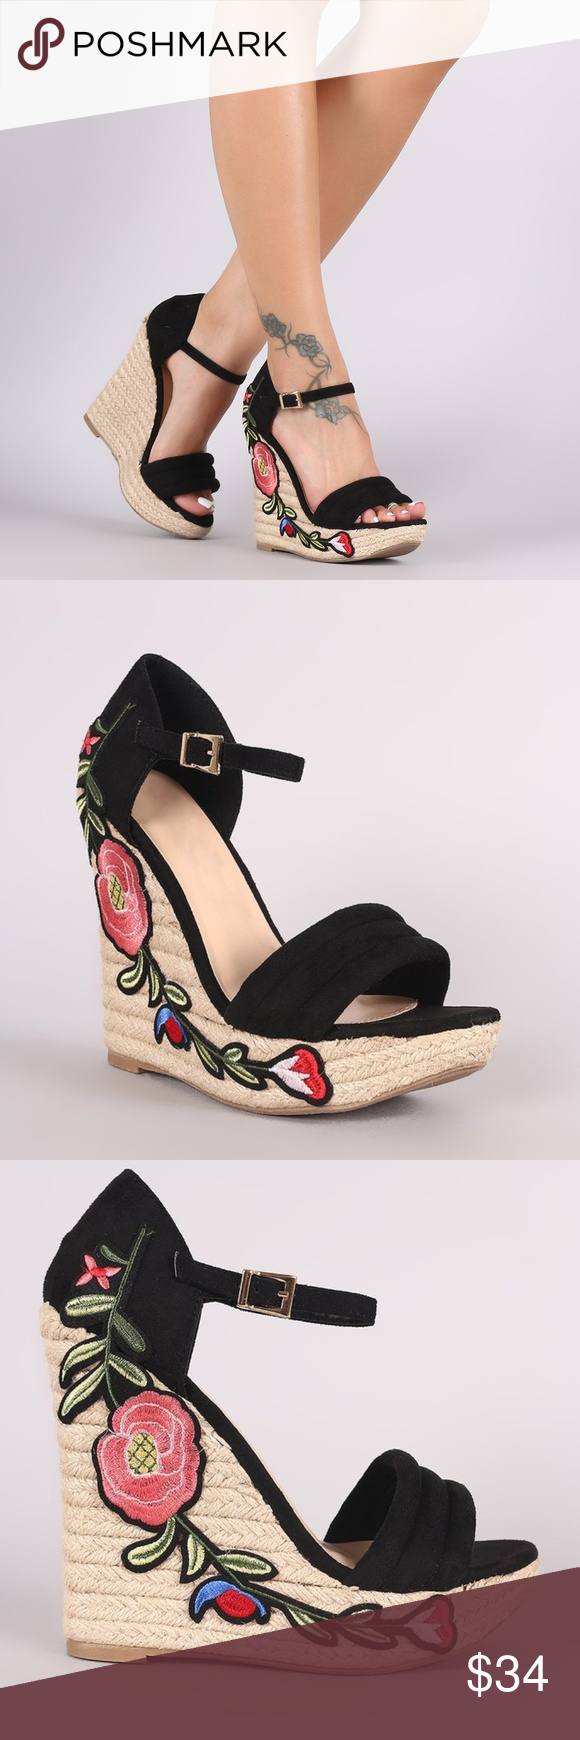 3d24f093b51 Wild Diva Lounge Embroidered Floral Wedge Heels OFFERS WELCOMED  ) Item   NWOT Wild Diva